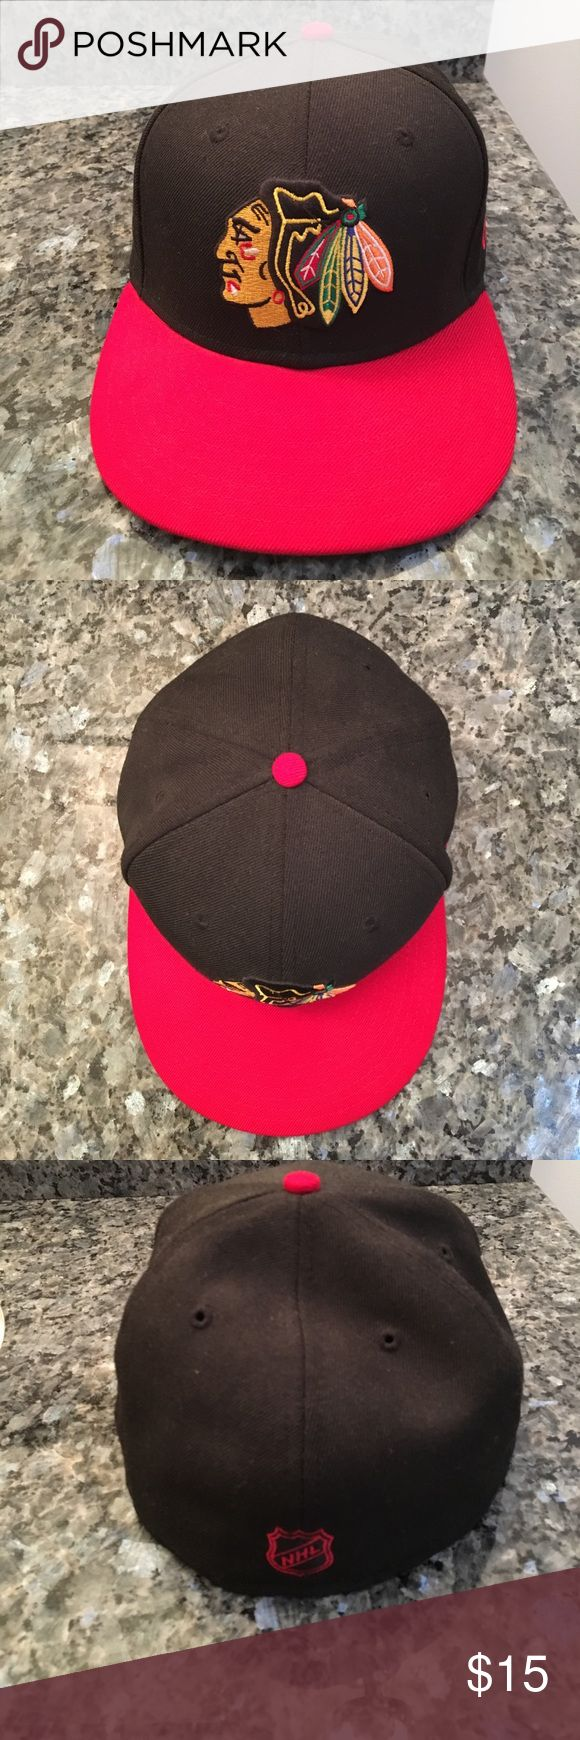 Official NHL Chicago Blackhawks New Era hat Official NHL Chicago Blackhawks hat. No sweat stains. Very little wear. Size 7-3/8 fitted hat New Era Accessories Hats